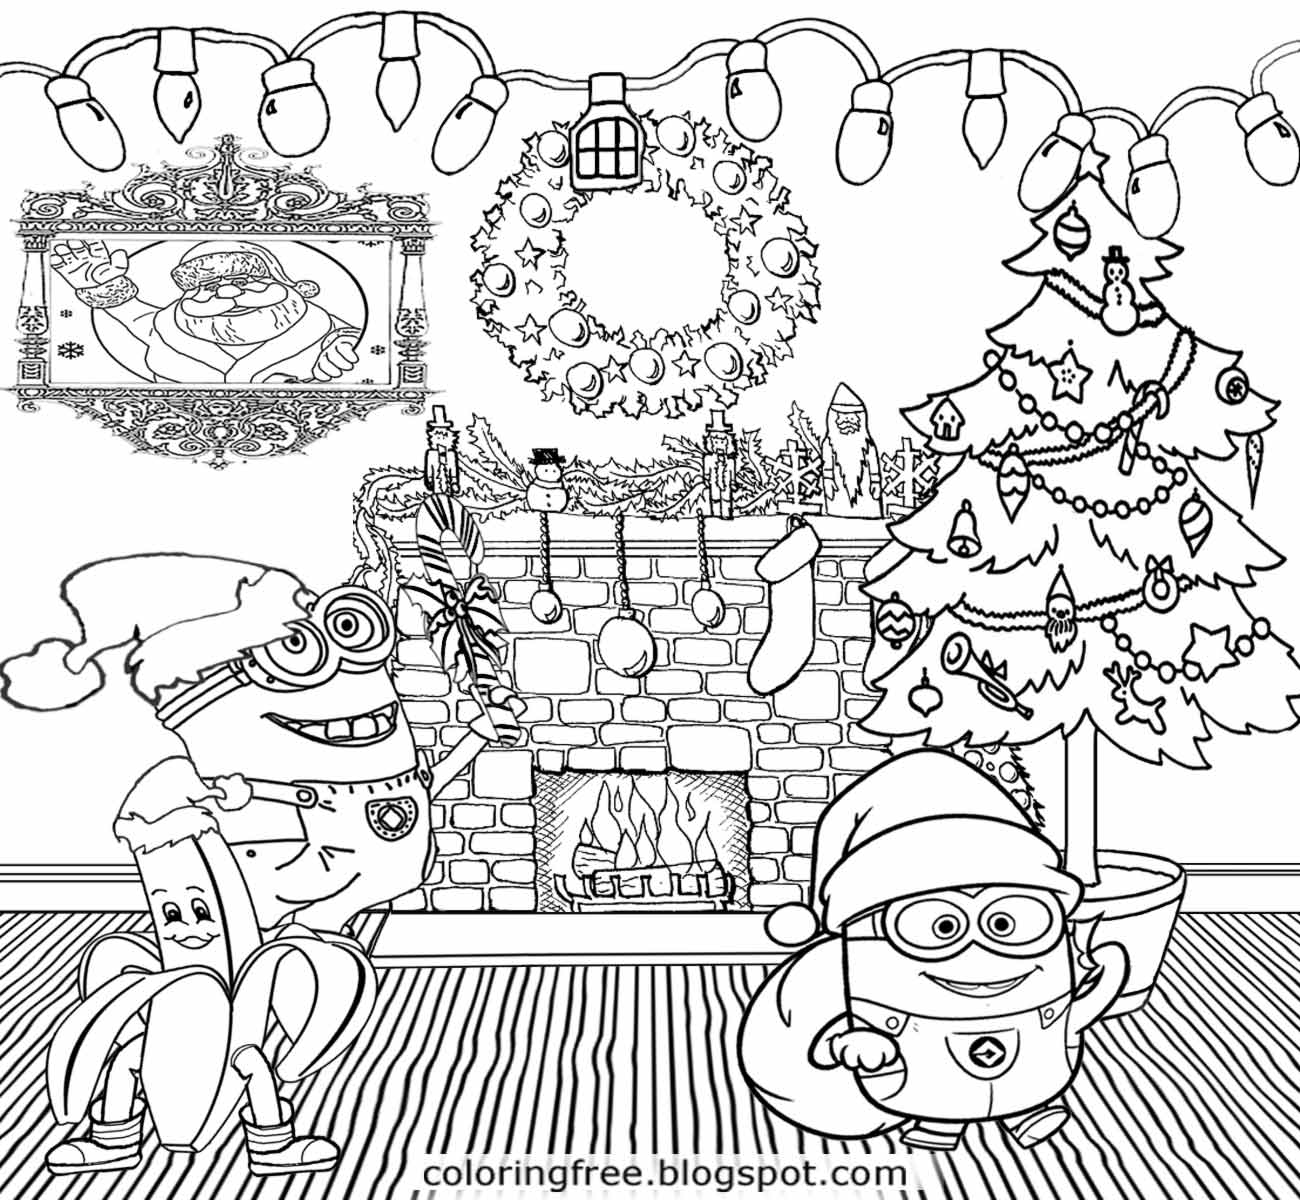 Free Coloring Pages Printable Pictures To Color Kids Drawing Ideas Kids Costume Minion Coloring